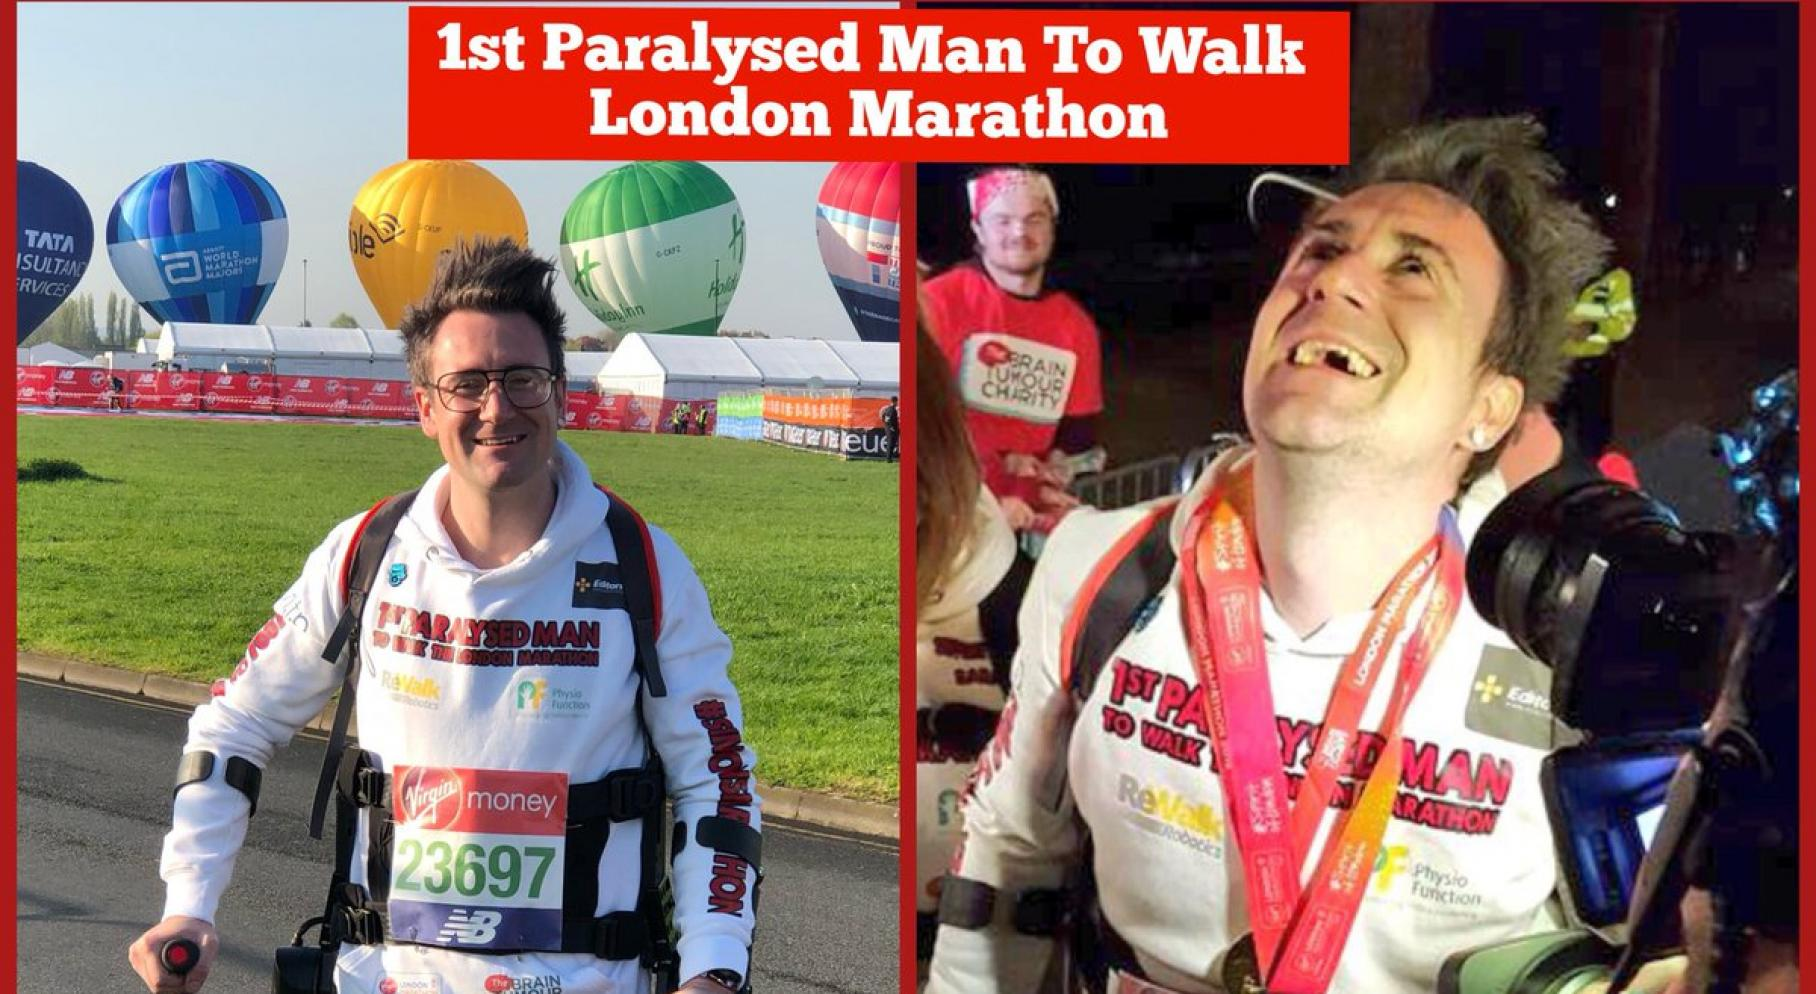 The first paralytic athlete to finish the London Marathon